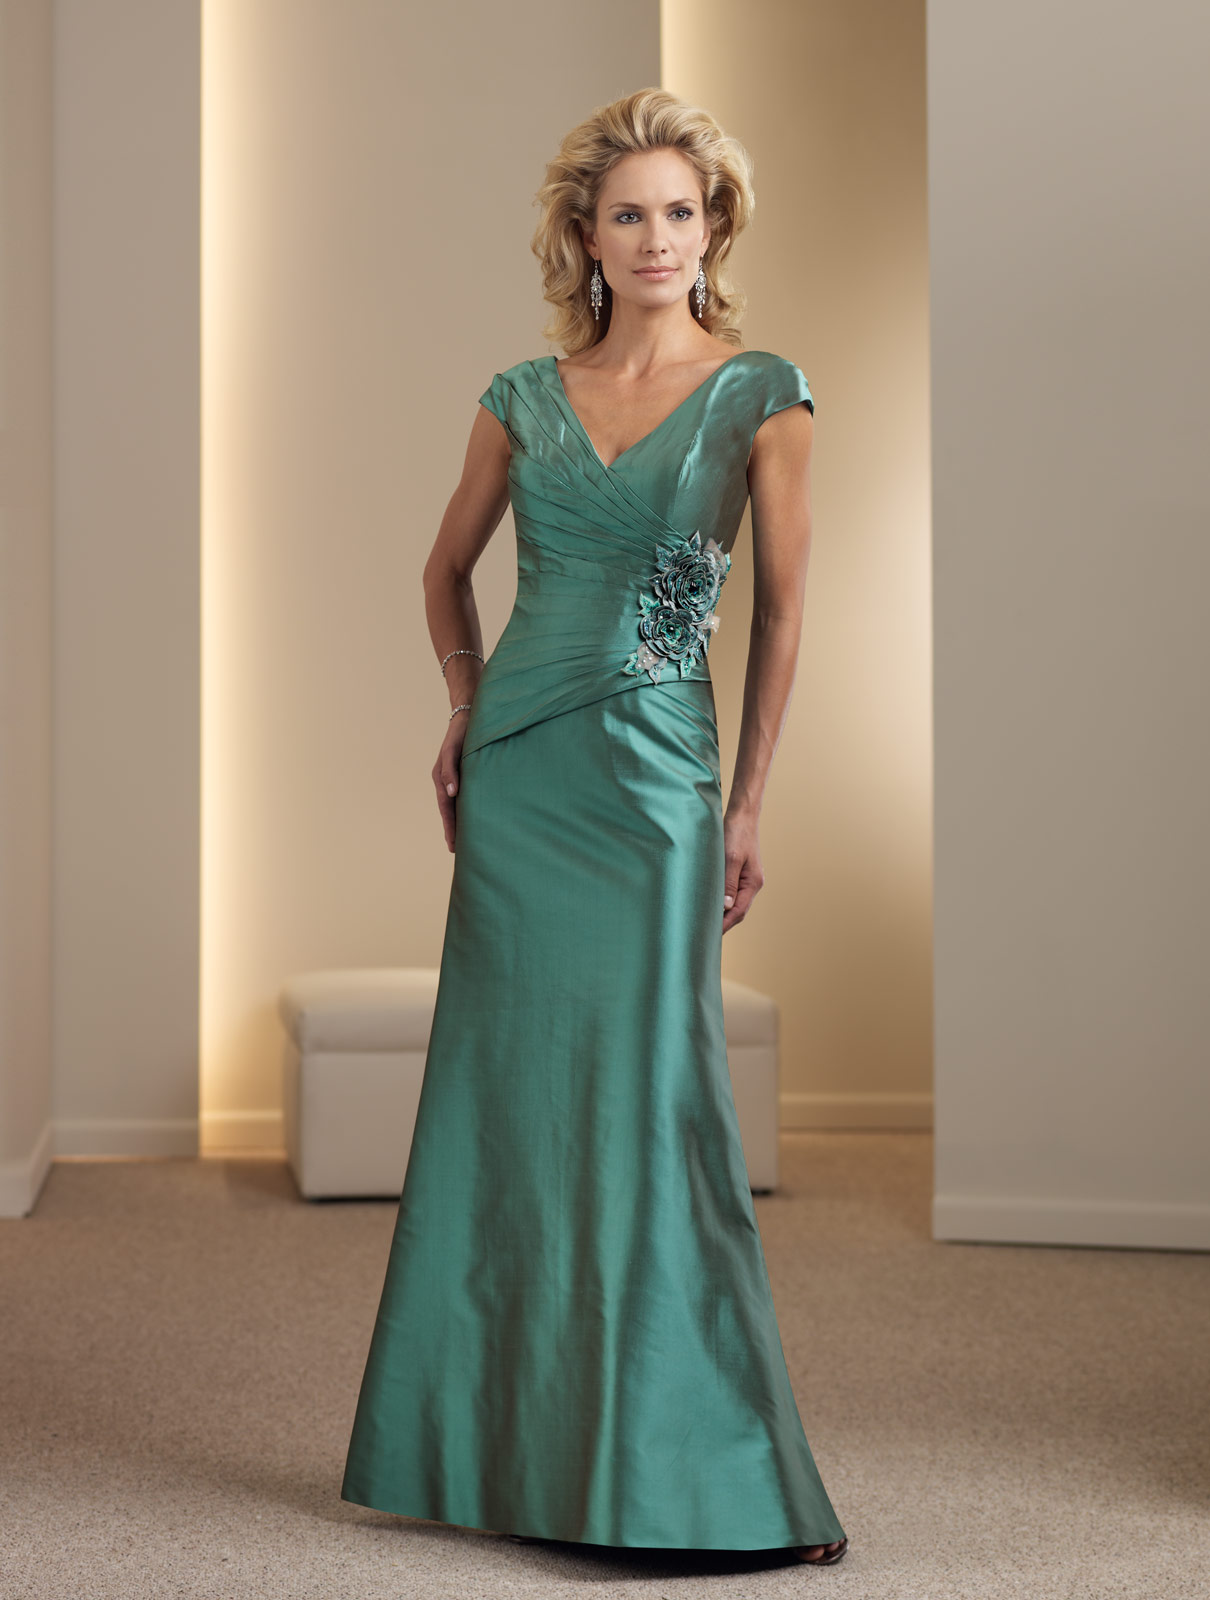 WhiteAzalea Mother of The Bride Dresses: May 2012